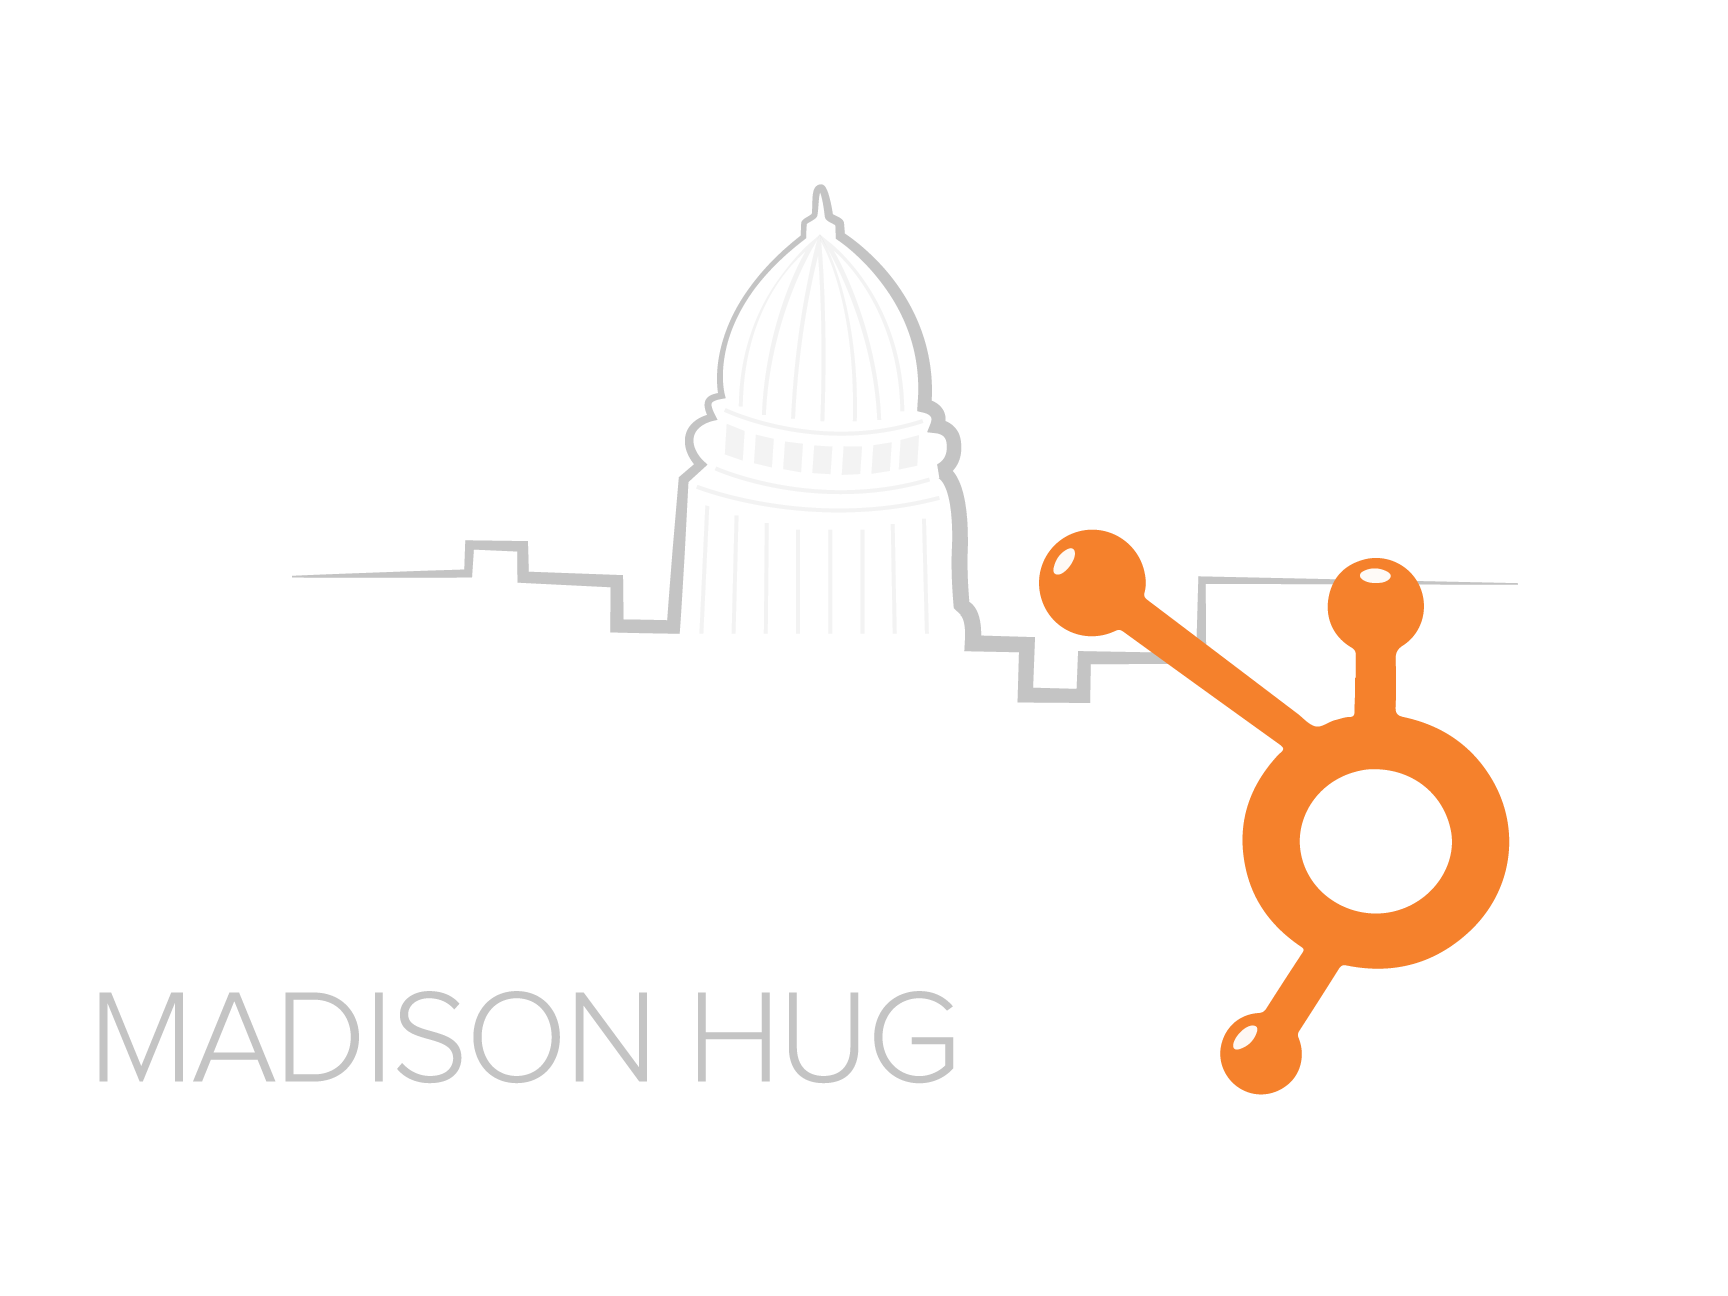 Madison HUG Logo